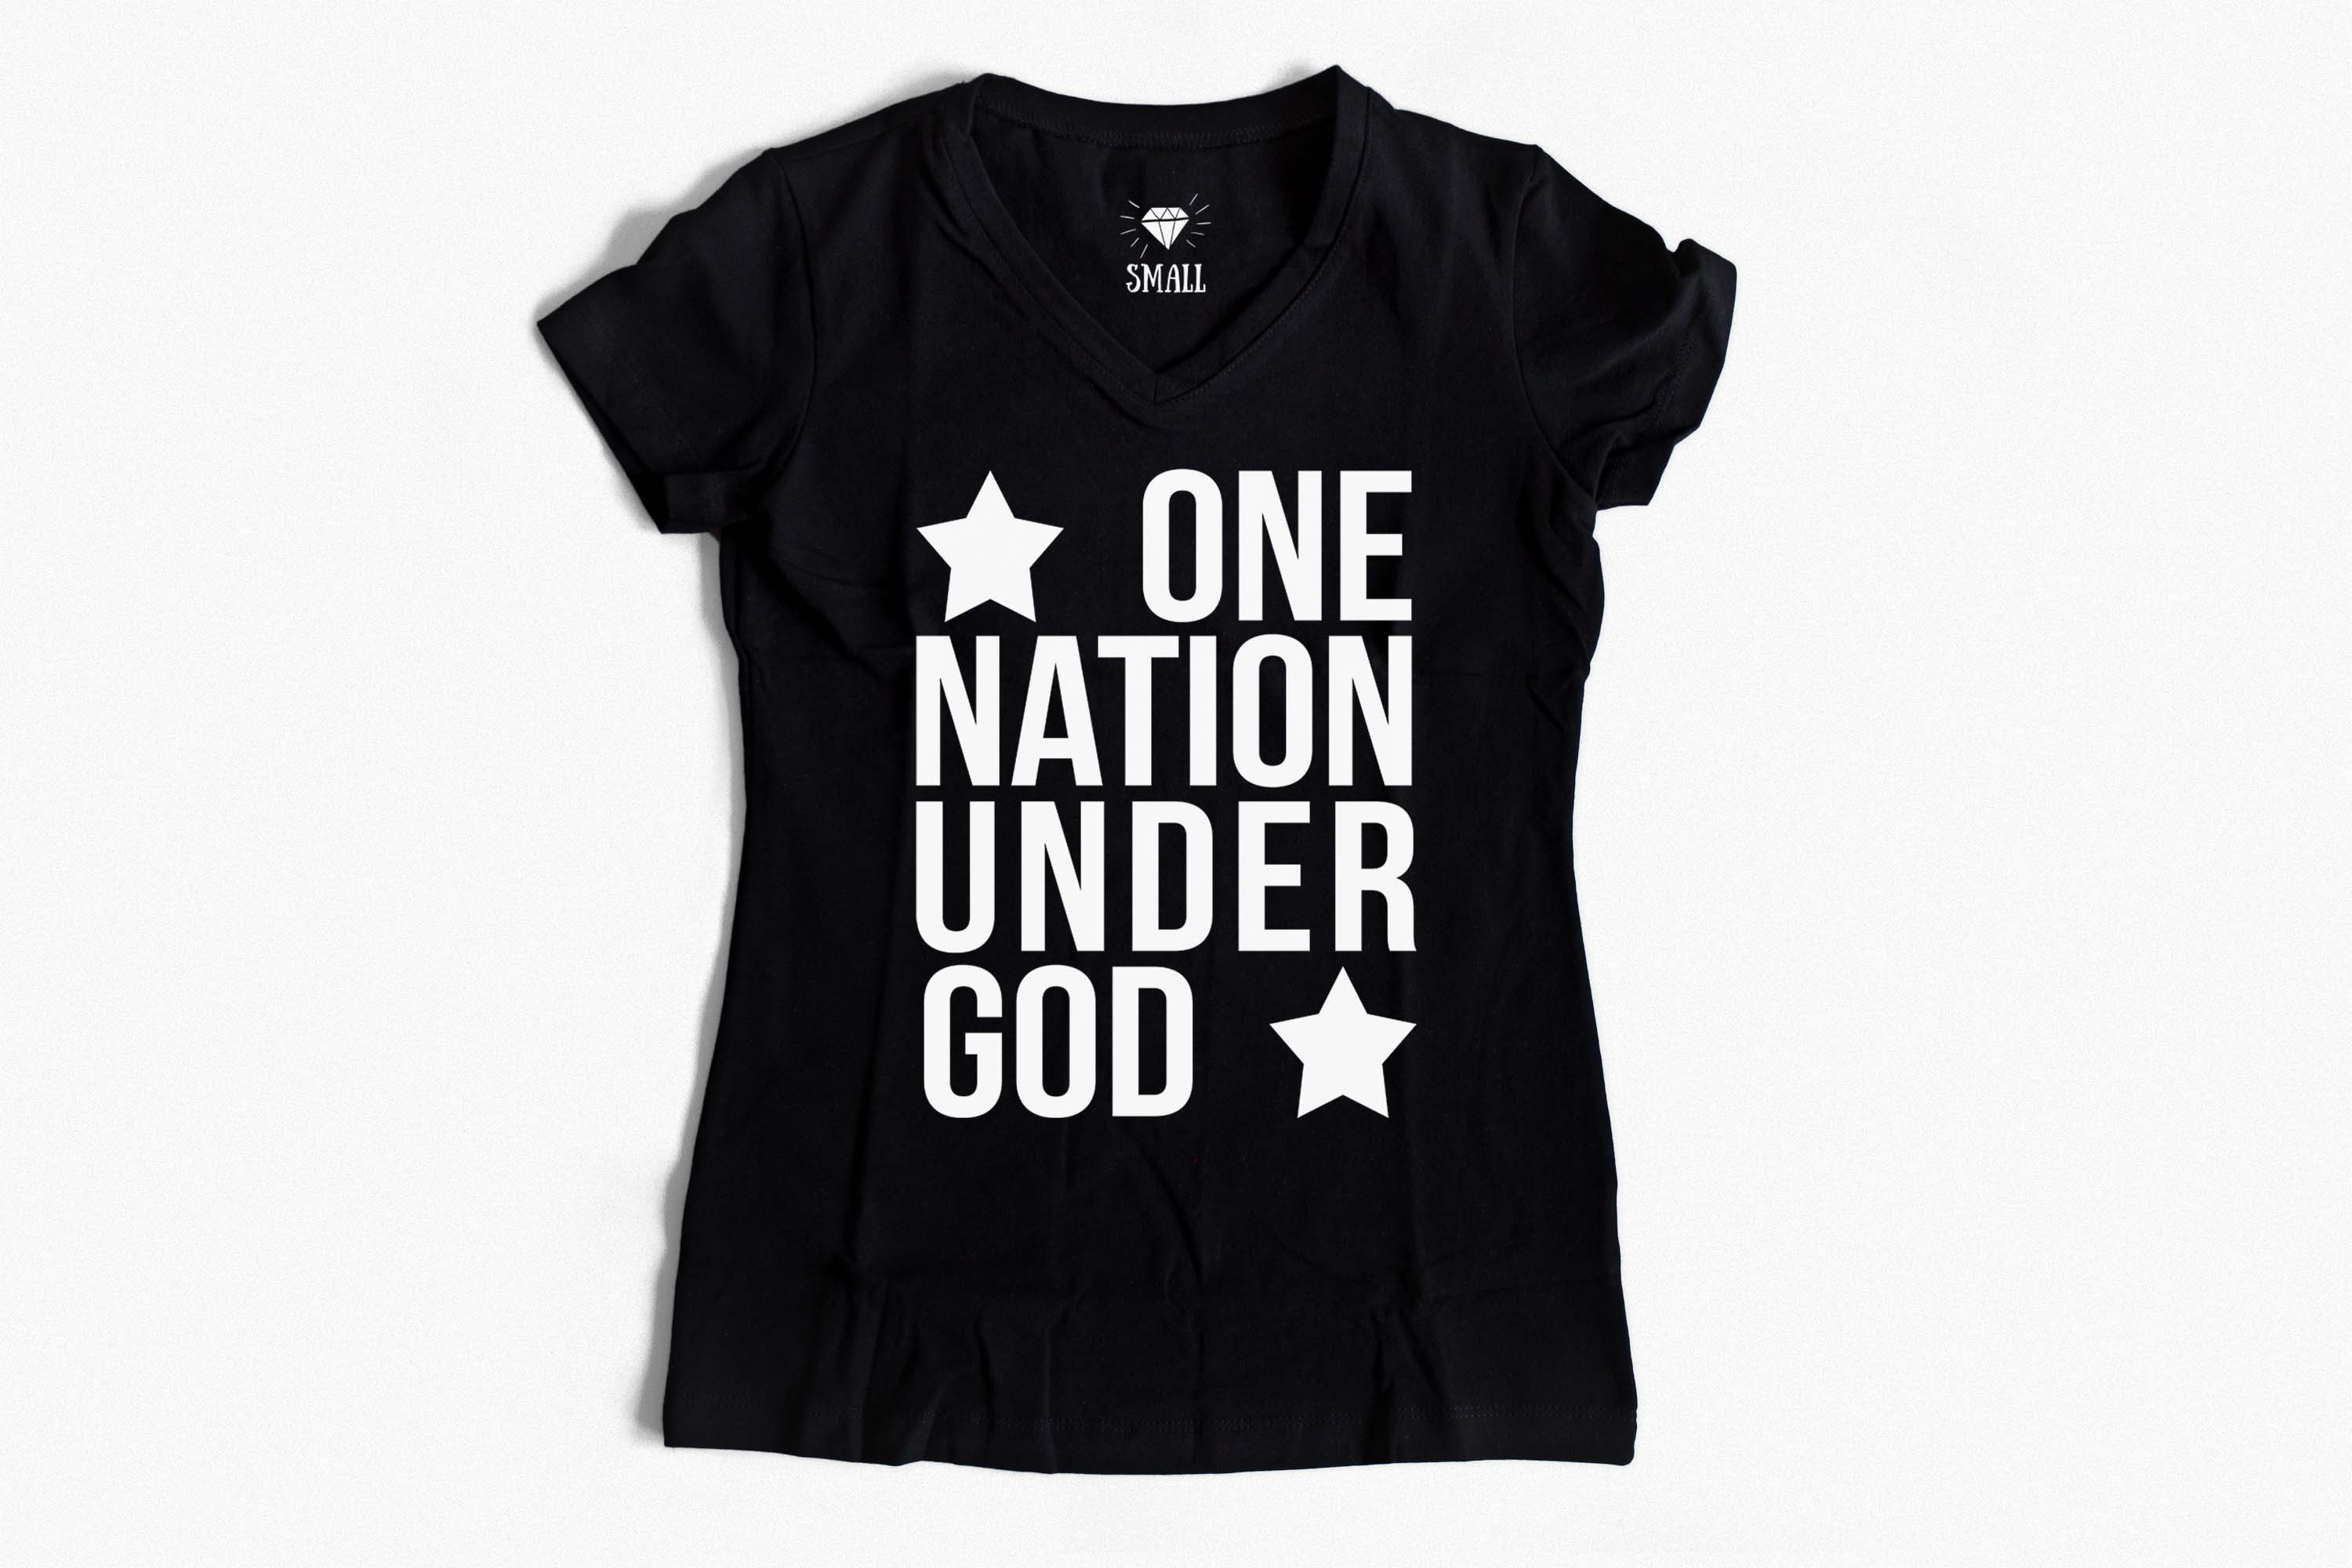 One nation under God SVG PNG EPS DXF 4th of July svg Patriotic svg file example image 2